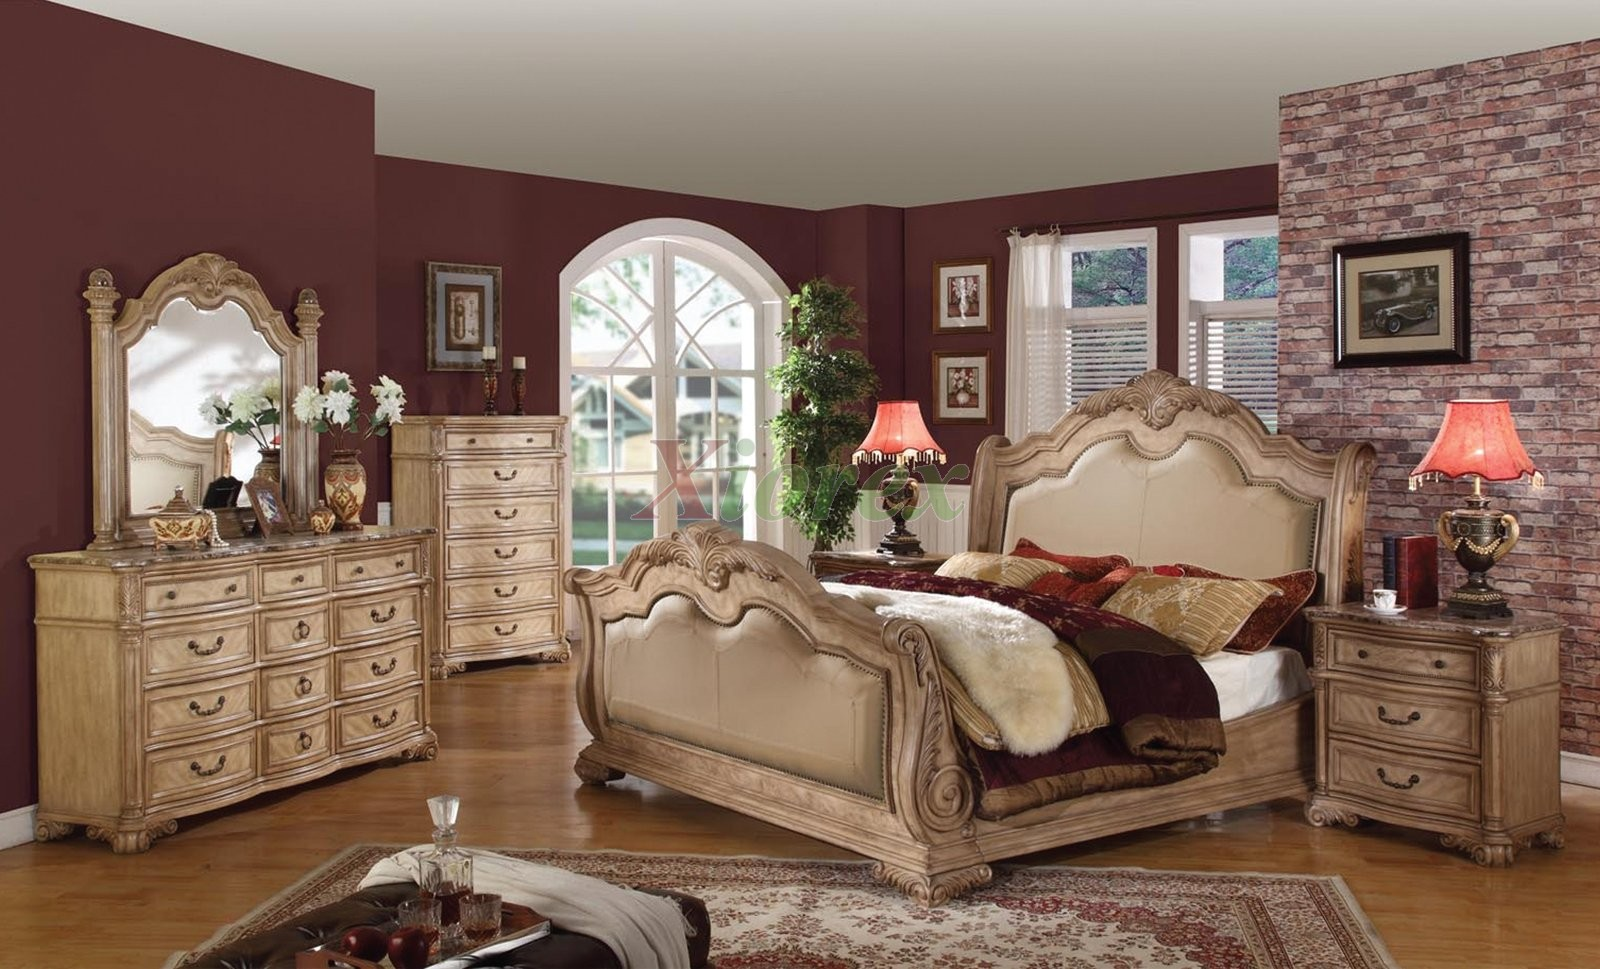 Rooms To Go Bedroom Sets Queen Sleigh Bedroom Furniture Set With Leather Headboard And